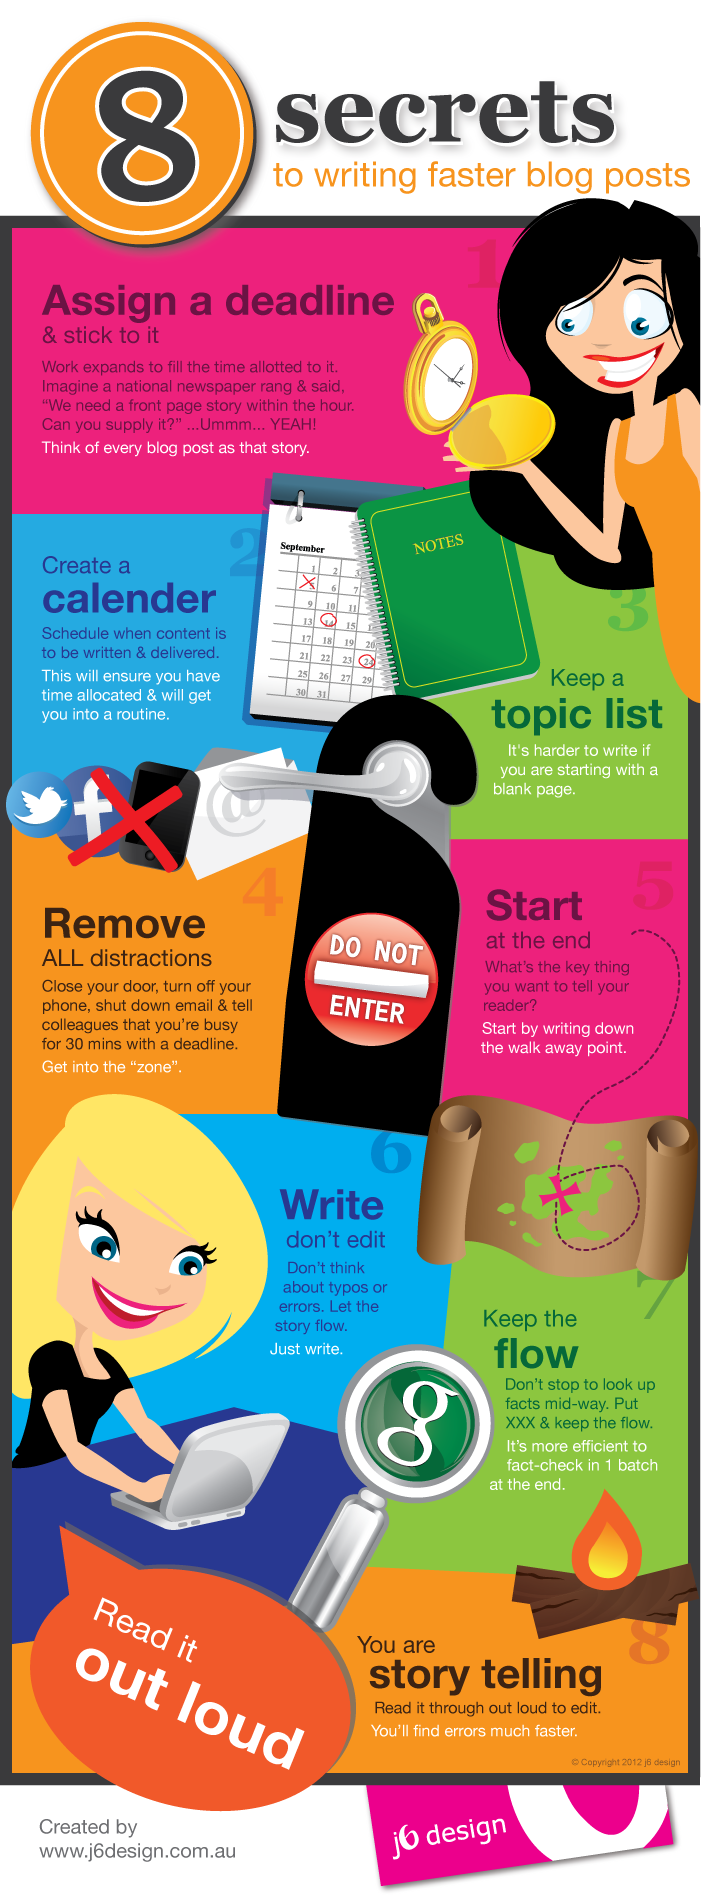 How to Write Faster blog posts